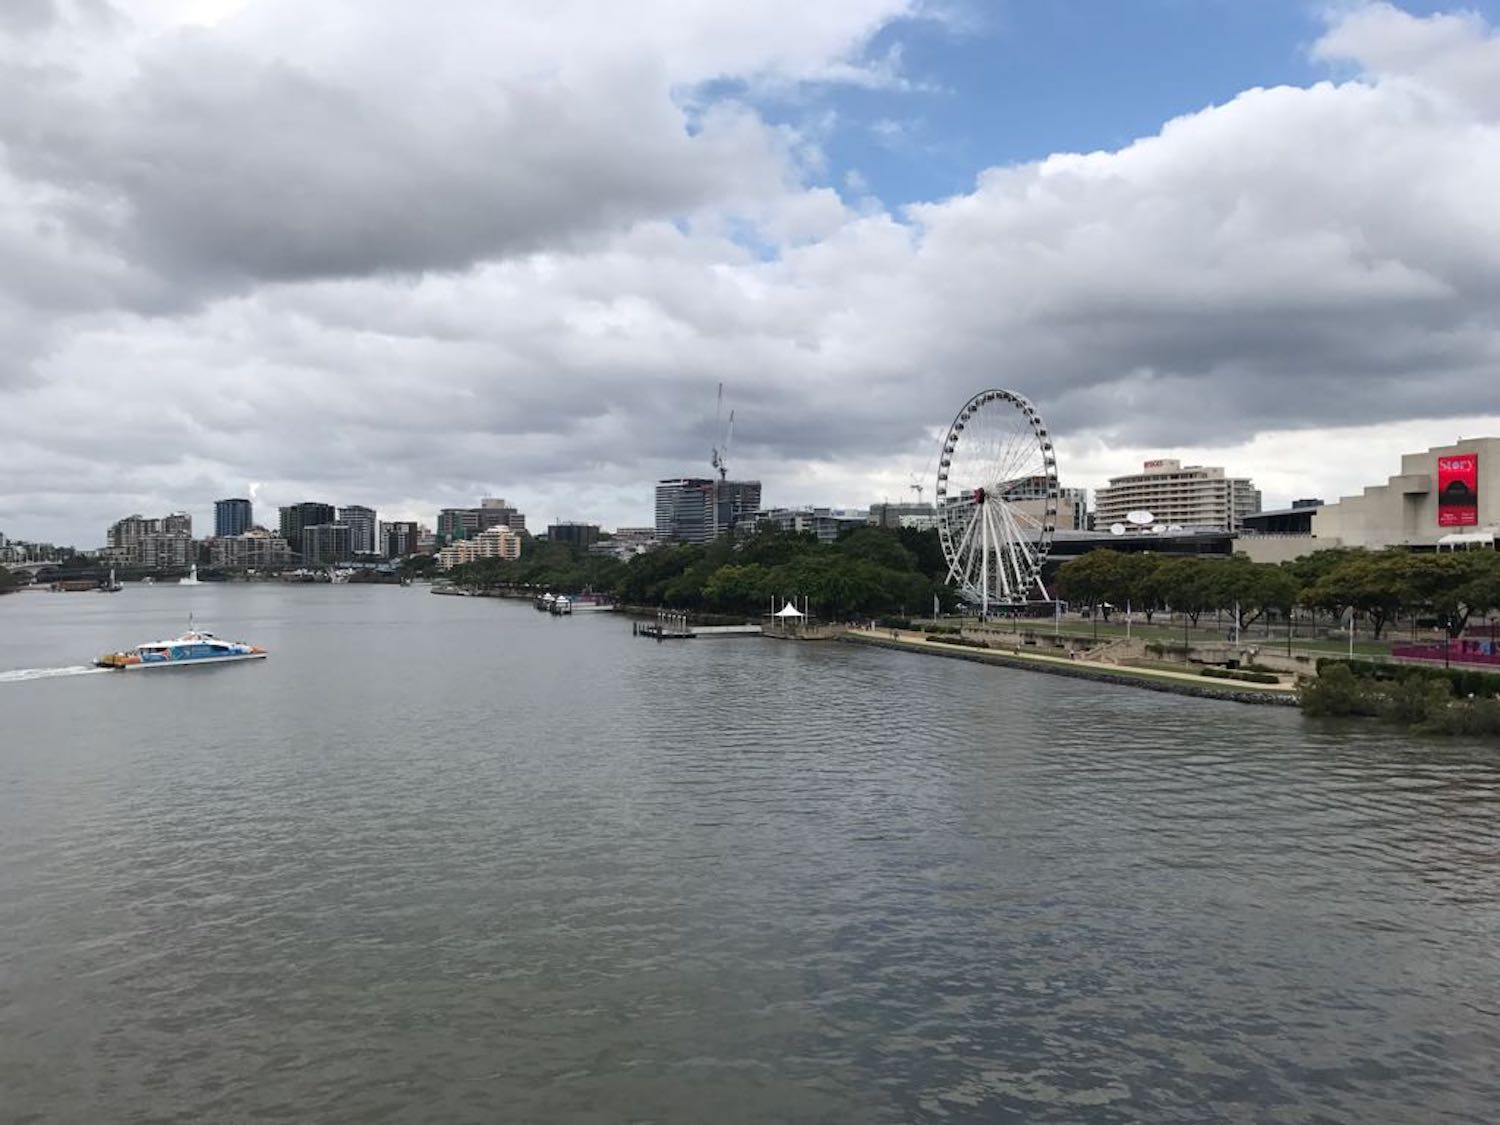 A lovely view of the famous ferris wheel in Brisbane